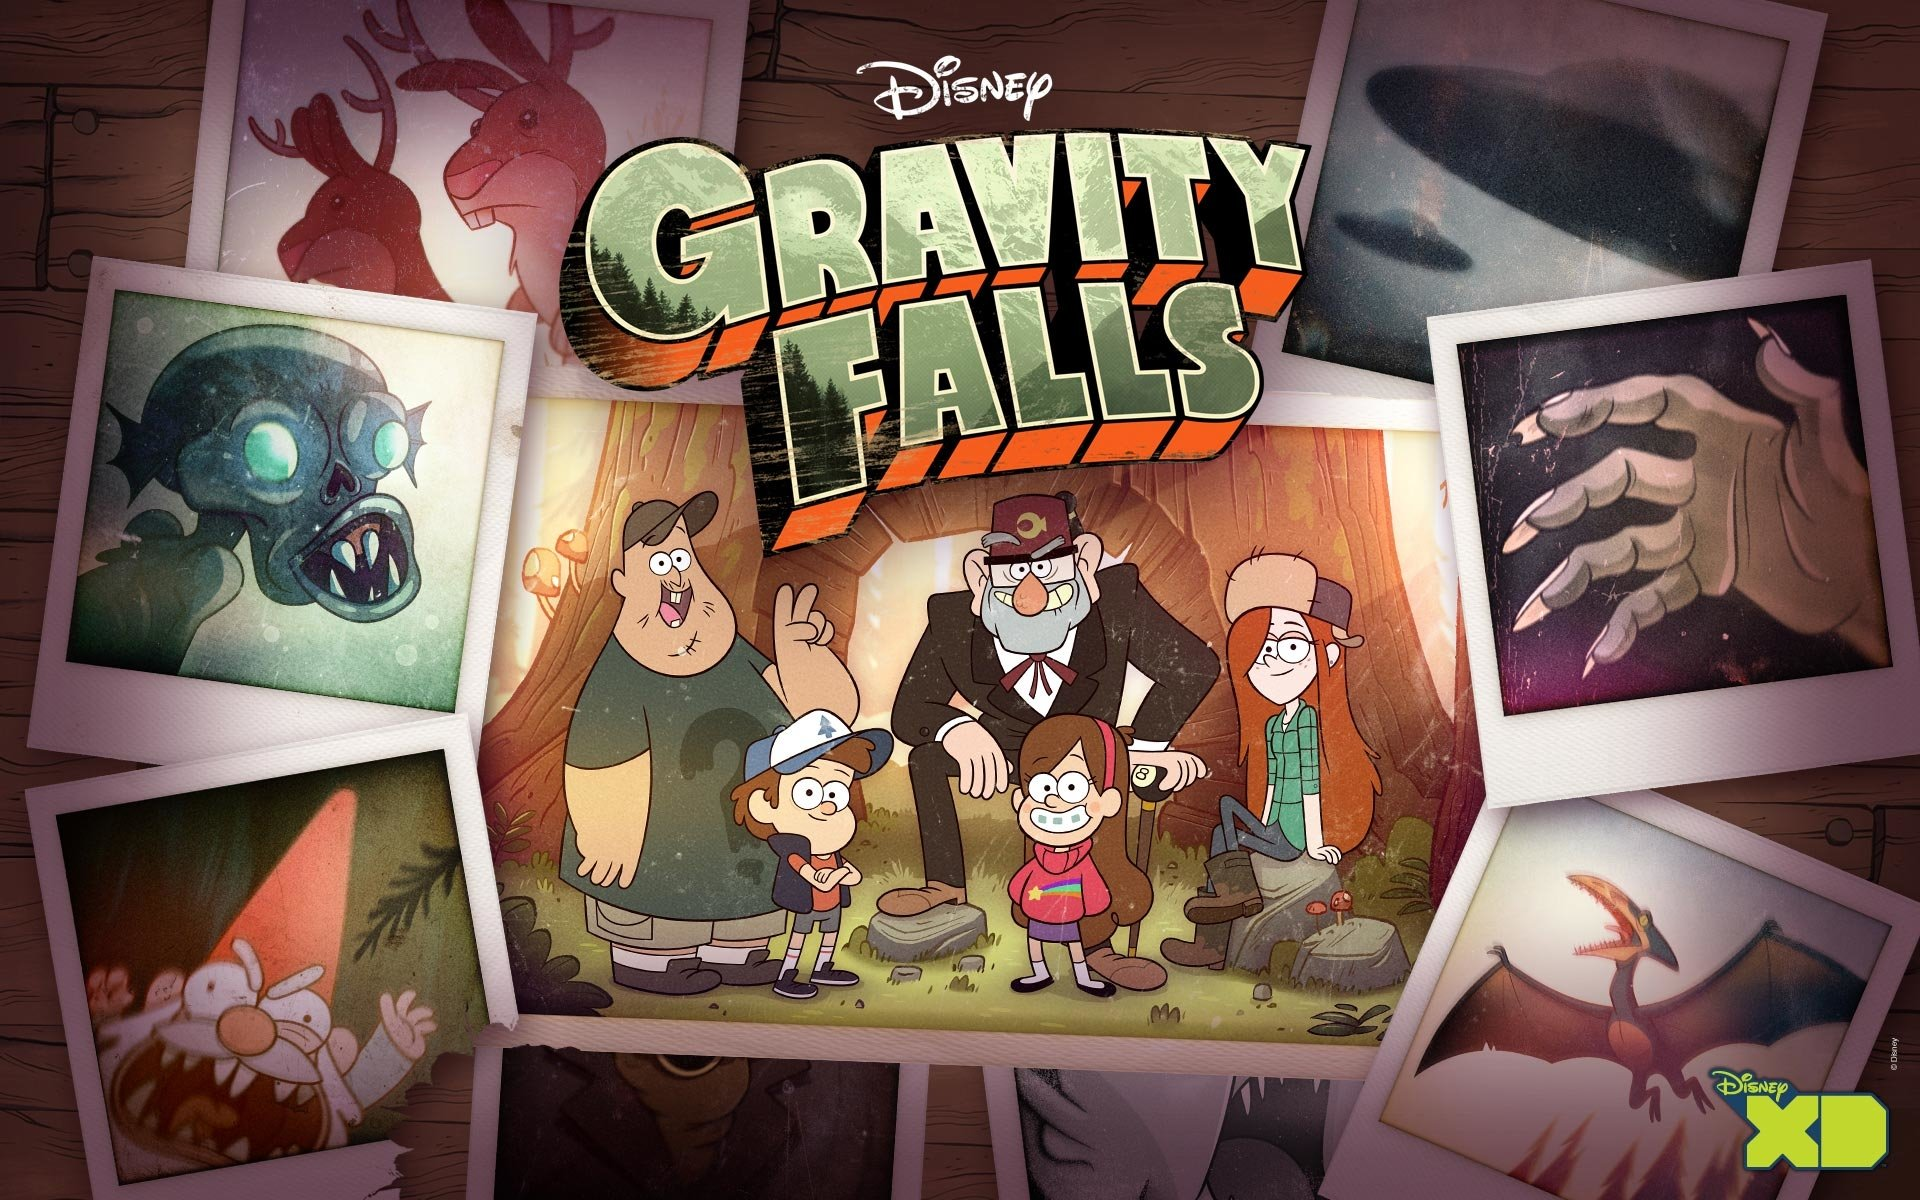 Gravity Falls Iphone 5 Wallpaper Gravity Falls Full Hd Fondo De Pantalla And Fondo De